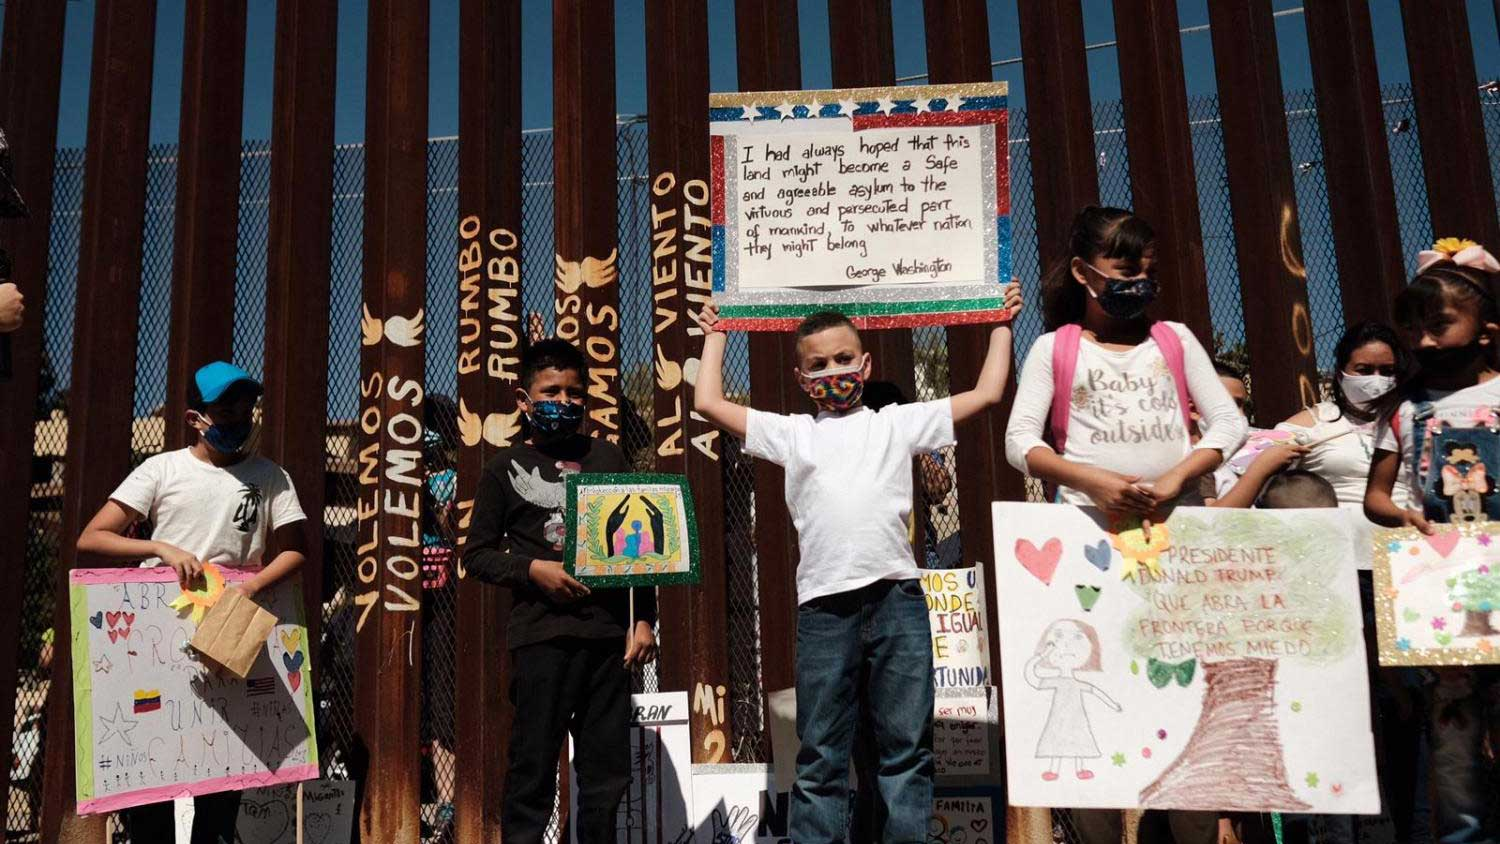 Children who are waiting for asylum in the United States with their families in Nogales, Sonora, marched to the border wall Wednesday, Oct. 21, 2020, to ask the United States to open the border to them.